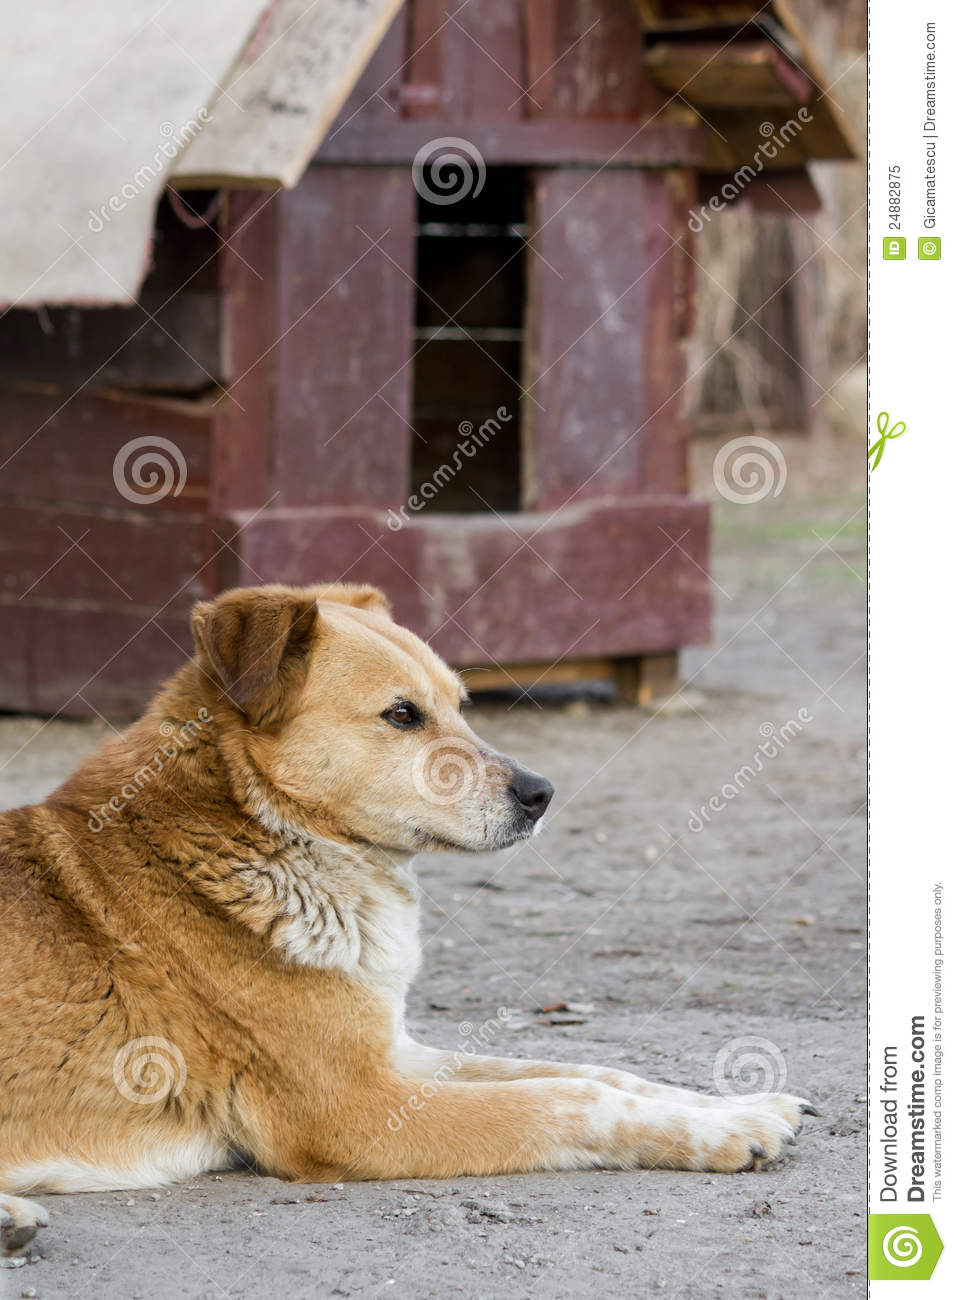 Stray Sad Dog Royalty Free Stock Photo - Image: 24882875